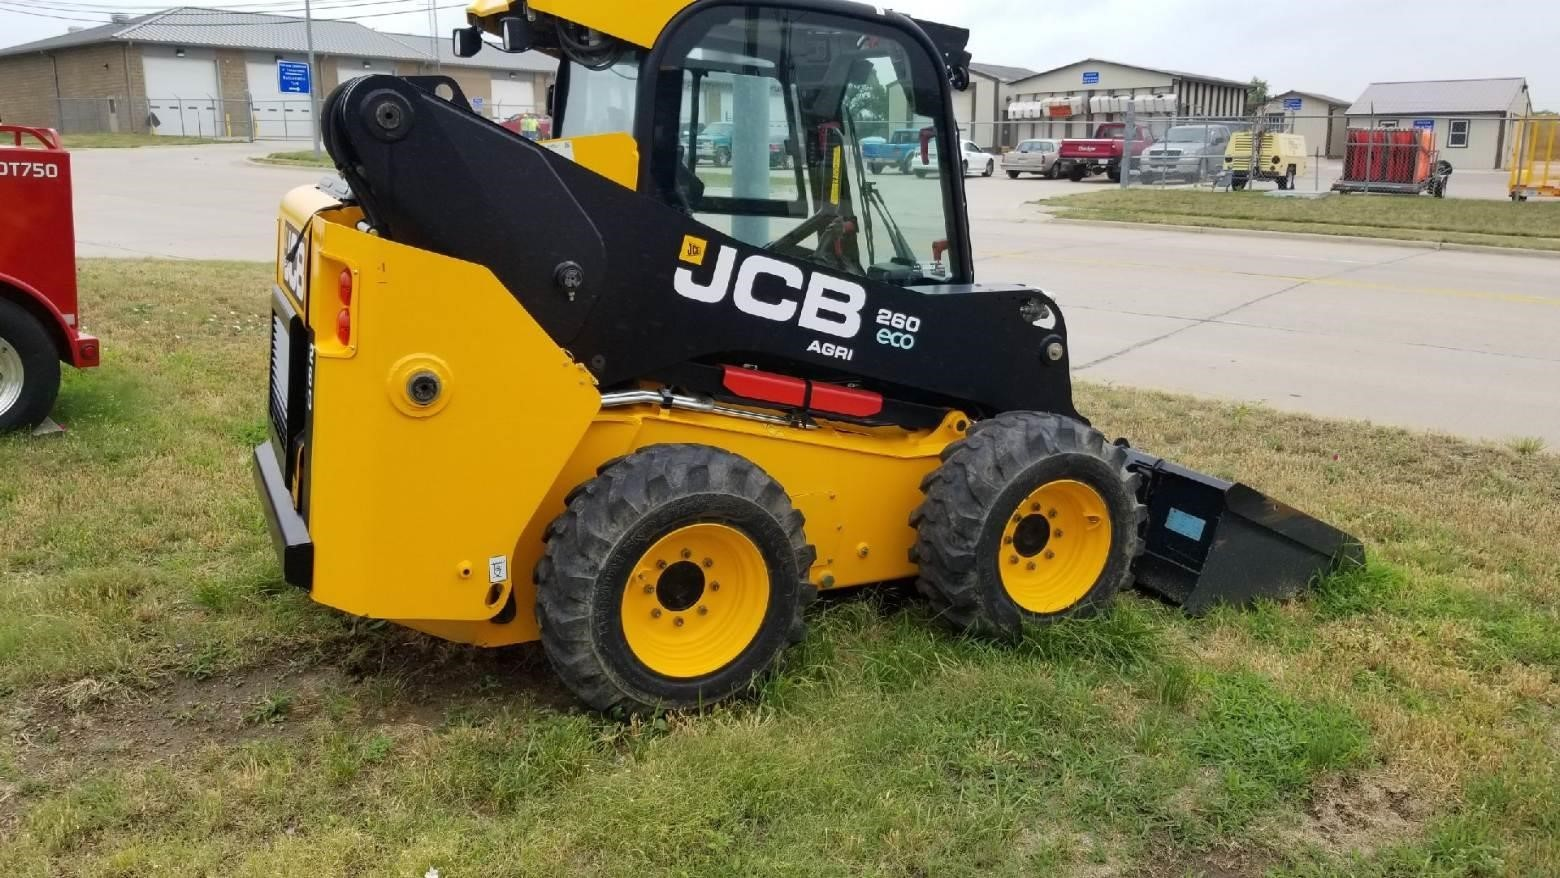 Used, 2015, JCB, 260, Skid Steers